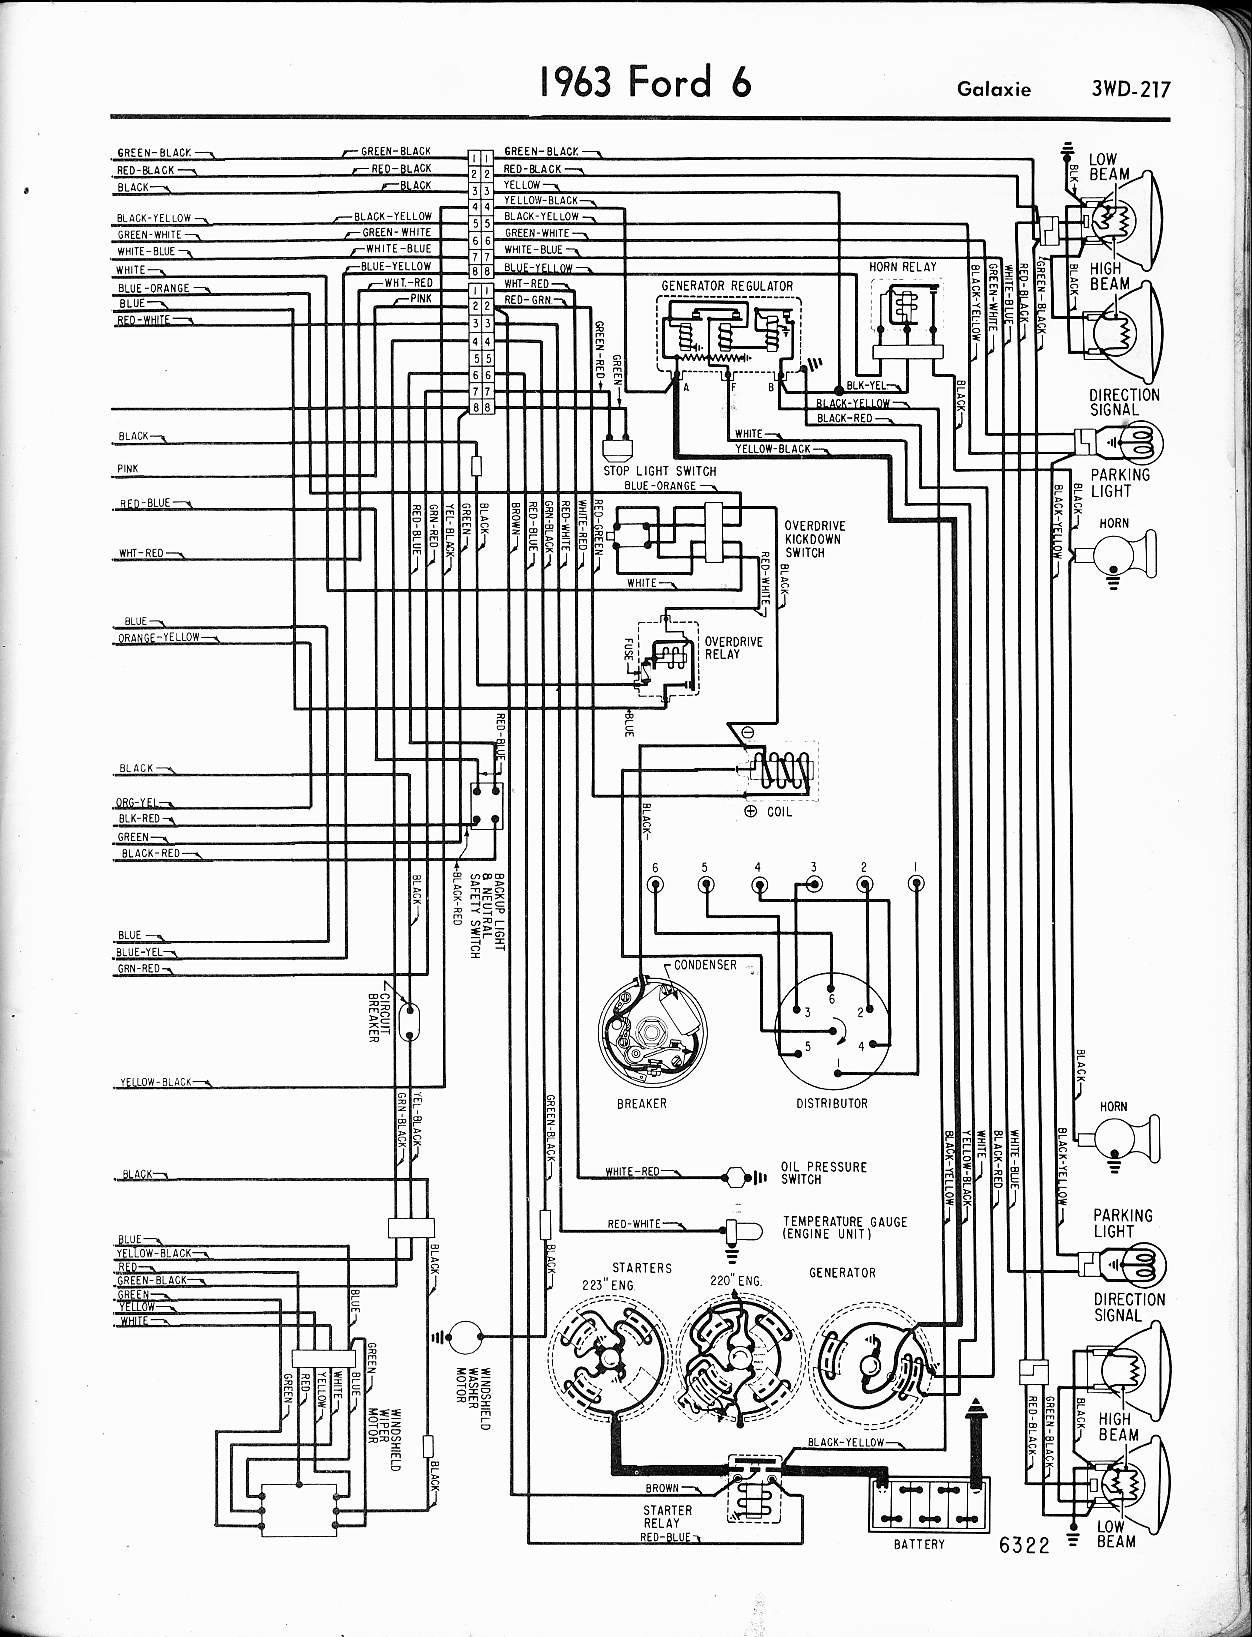 MWire5765 217 wiring schematic for shibaura sd22 tractor diagram wiring  at soozxer.org